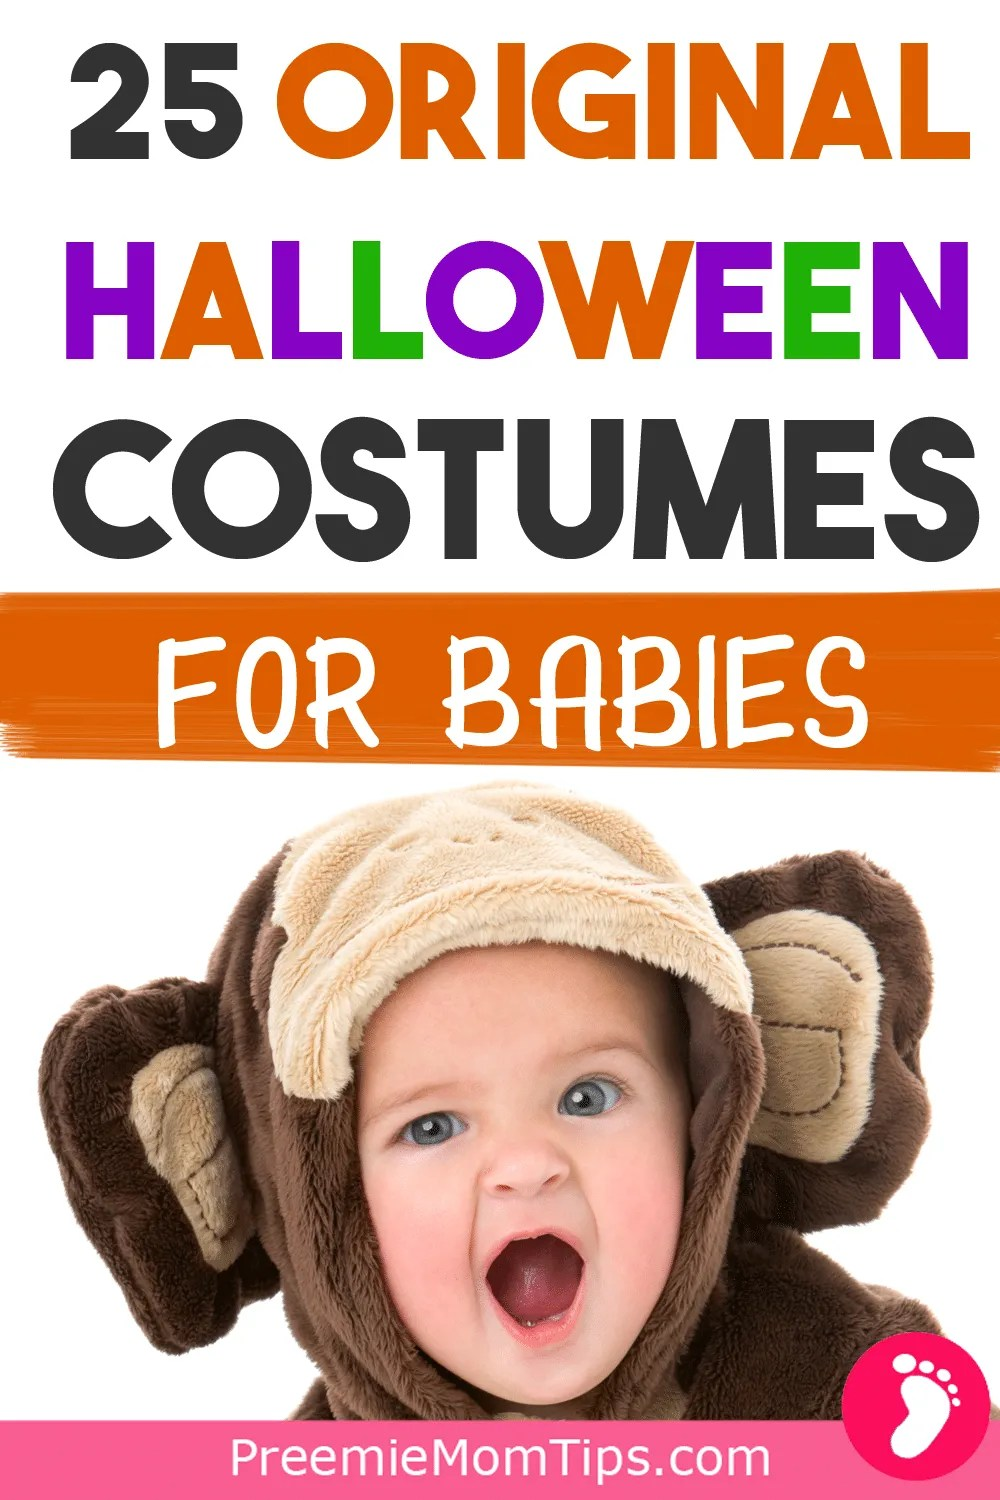 Get ready for some Halloween fun with these 25 exciting, original, classic and super cute Halloween costumes for your baby's first Halloween ever. Start the spooky season in a great fashion!